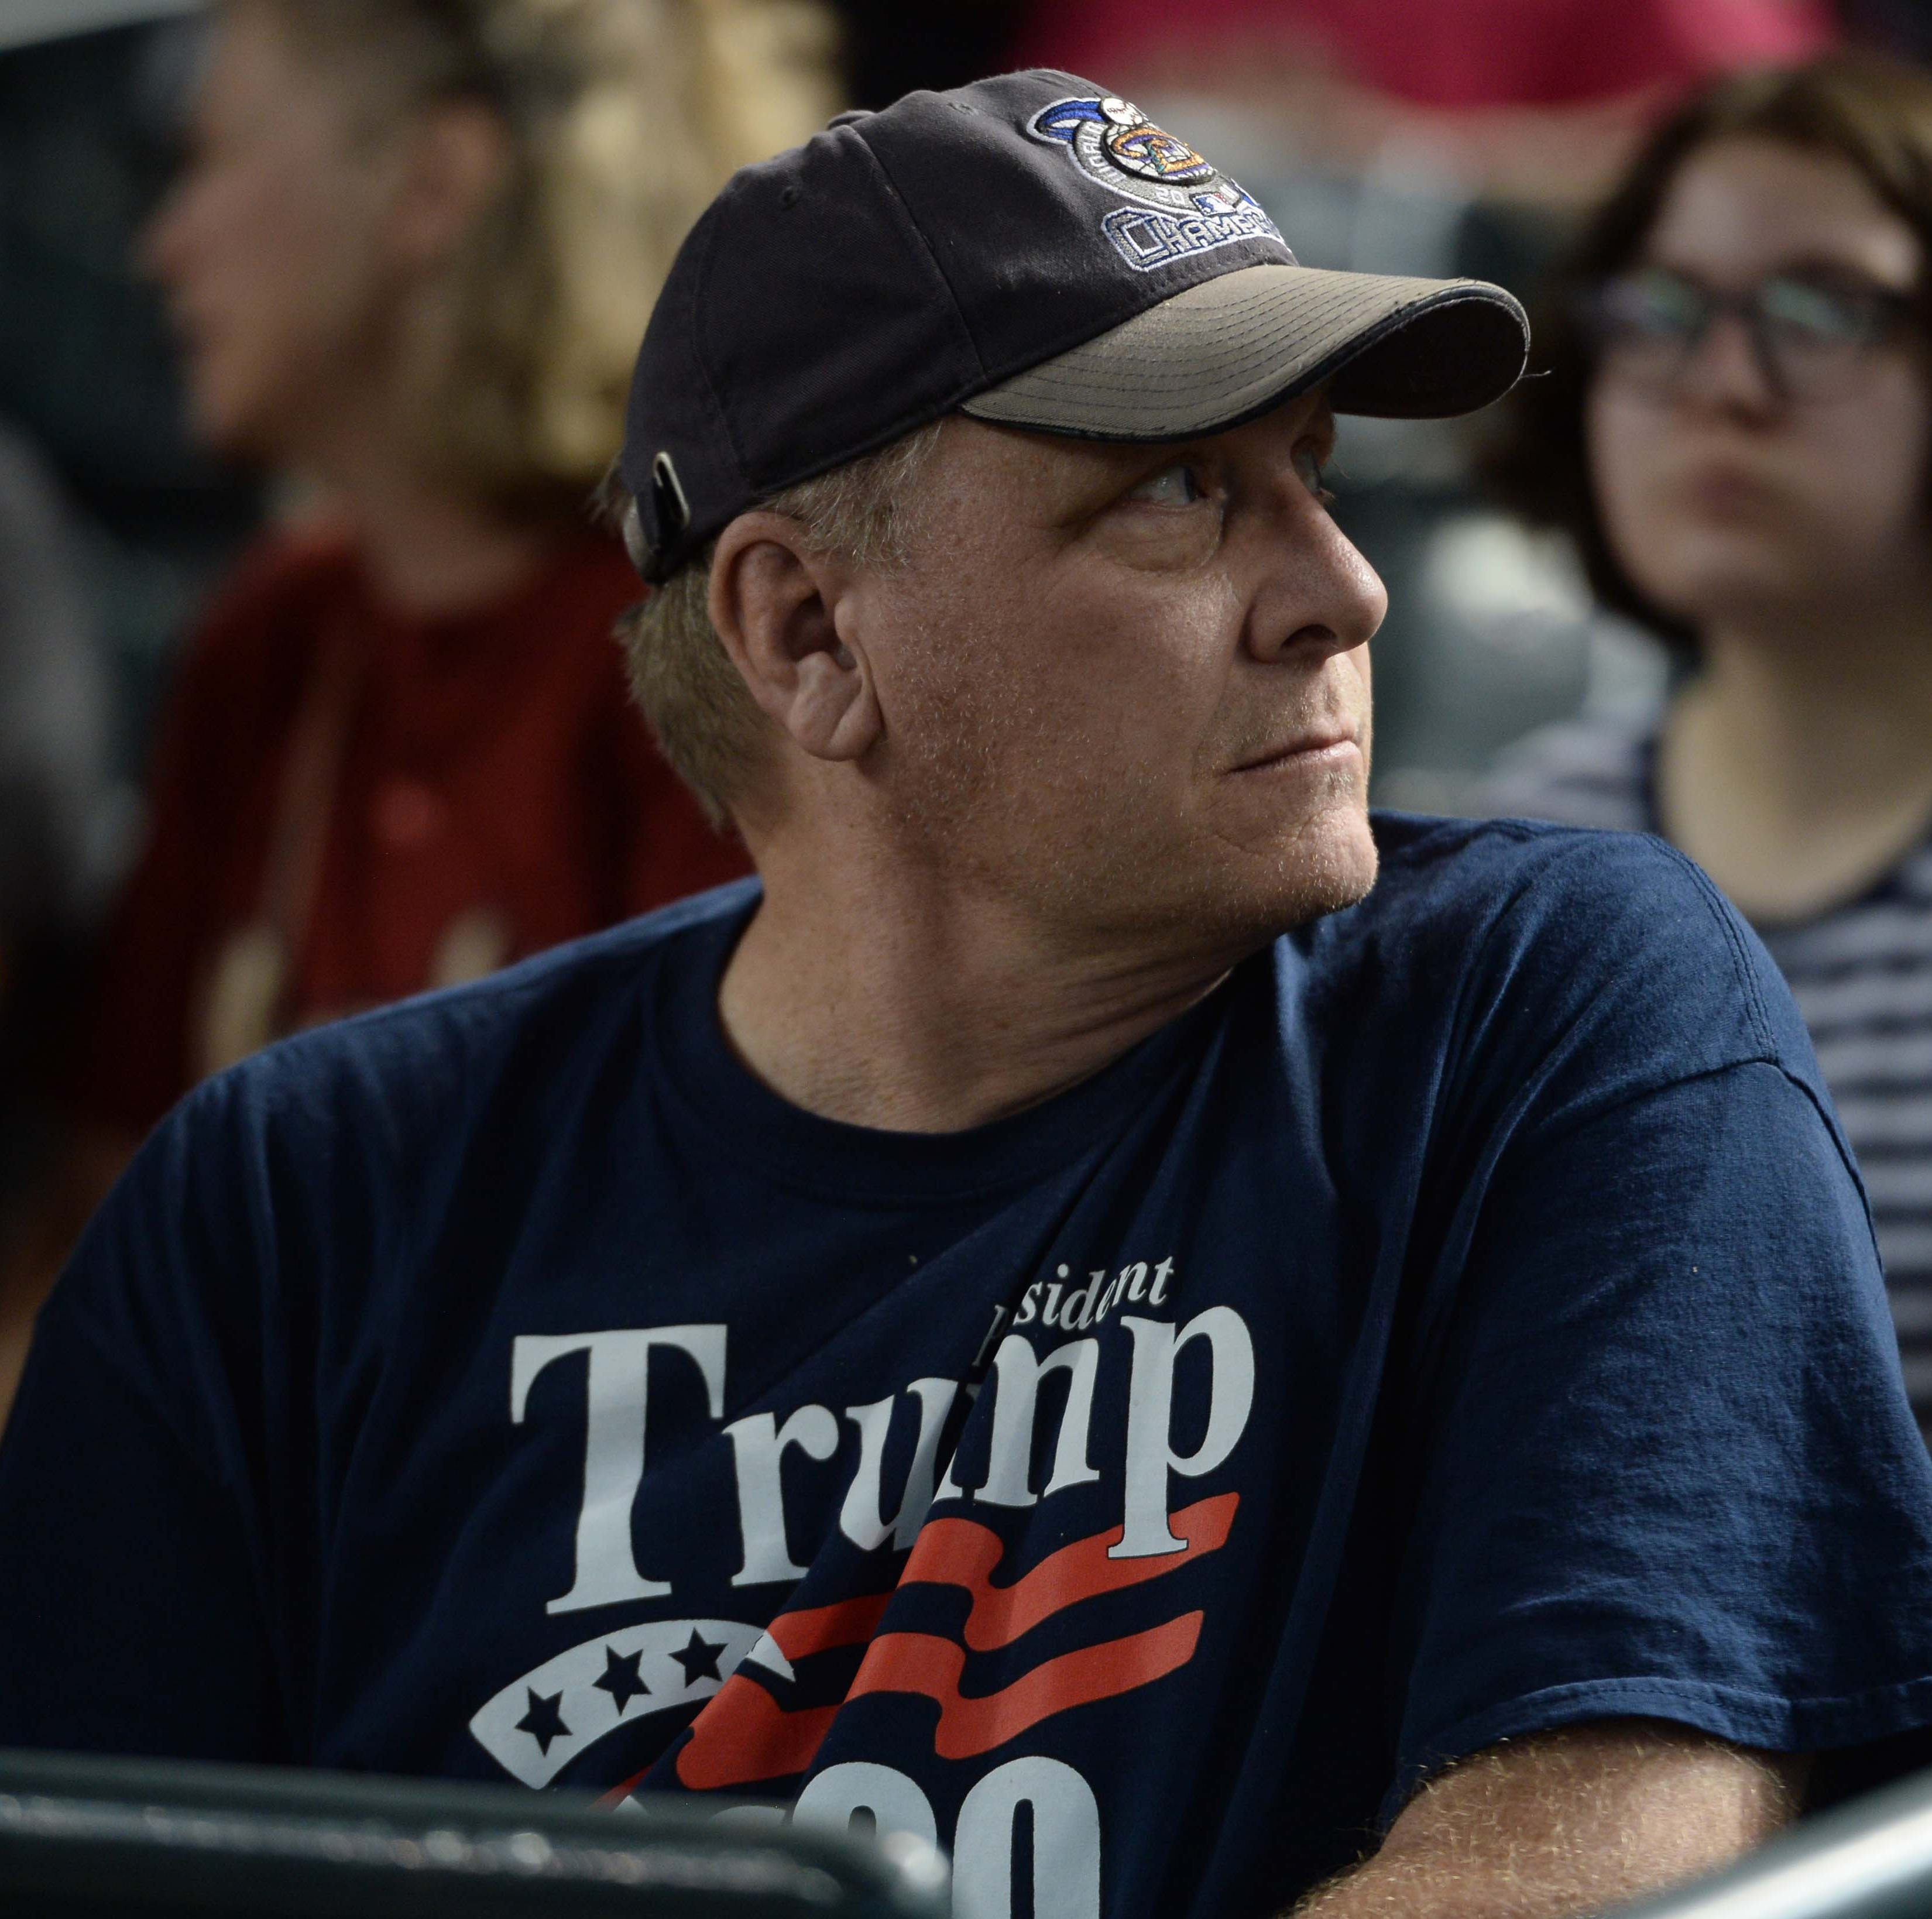 President Donald Trump says Curt Schilling deserves to be in Baseball Hall of Fame